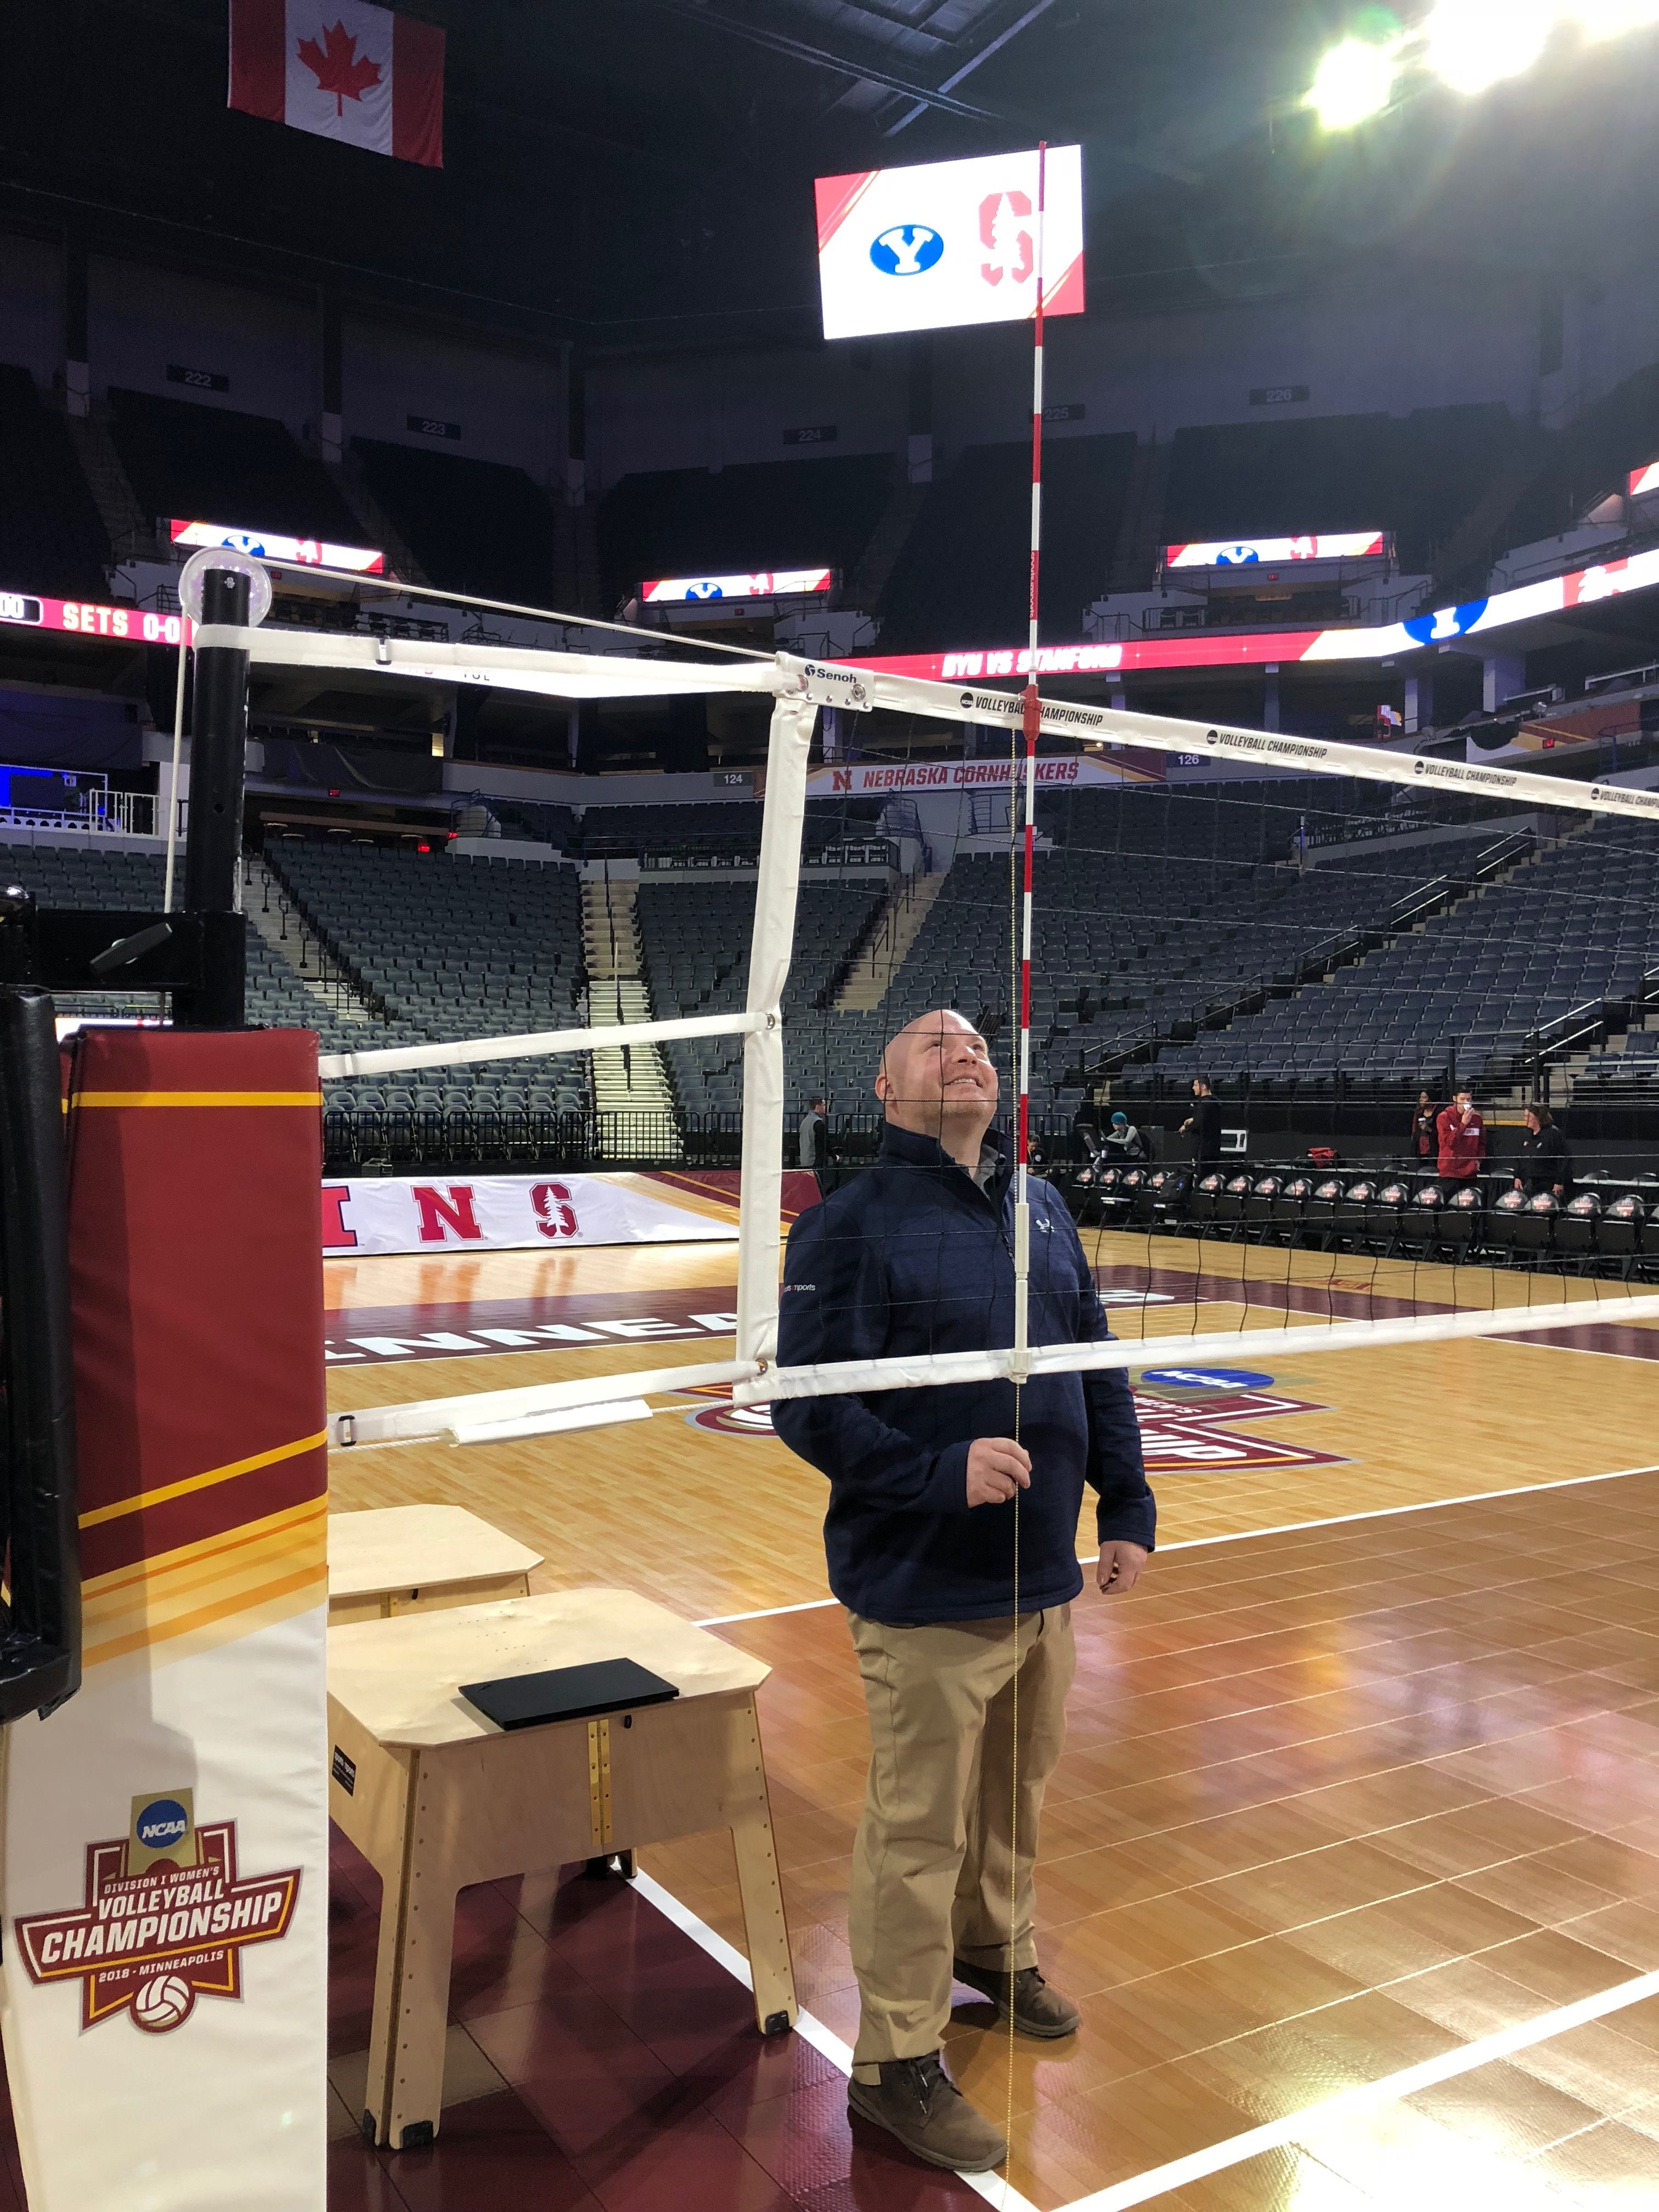 Checking Net Height For The Championship The Championship Volleyball Sports